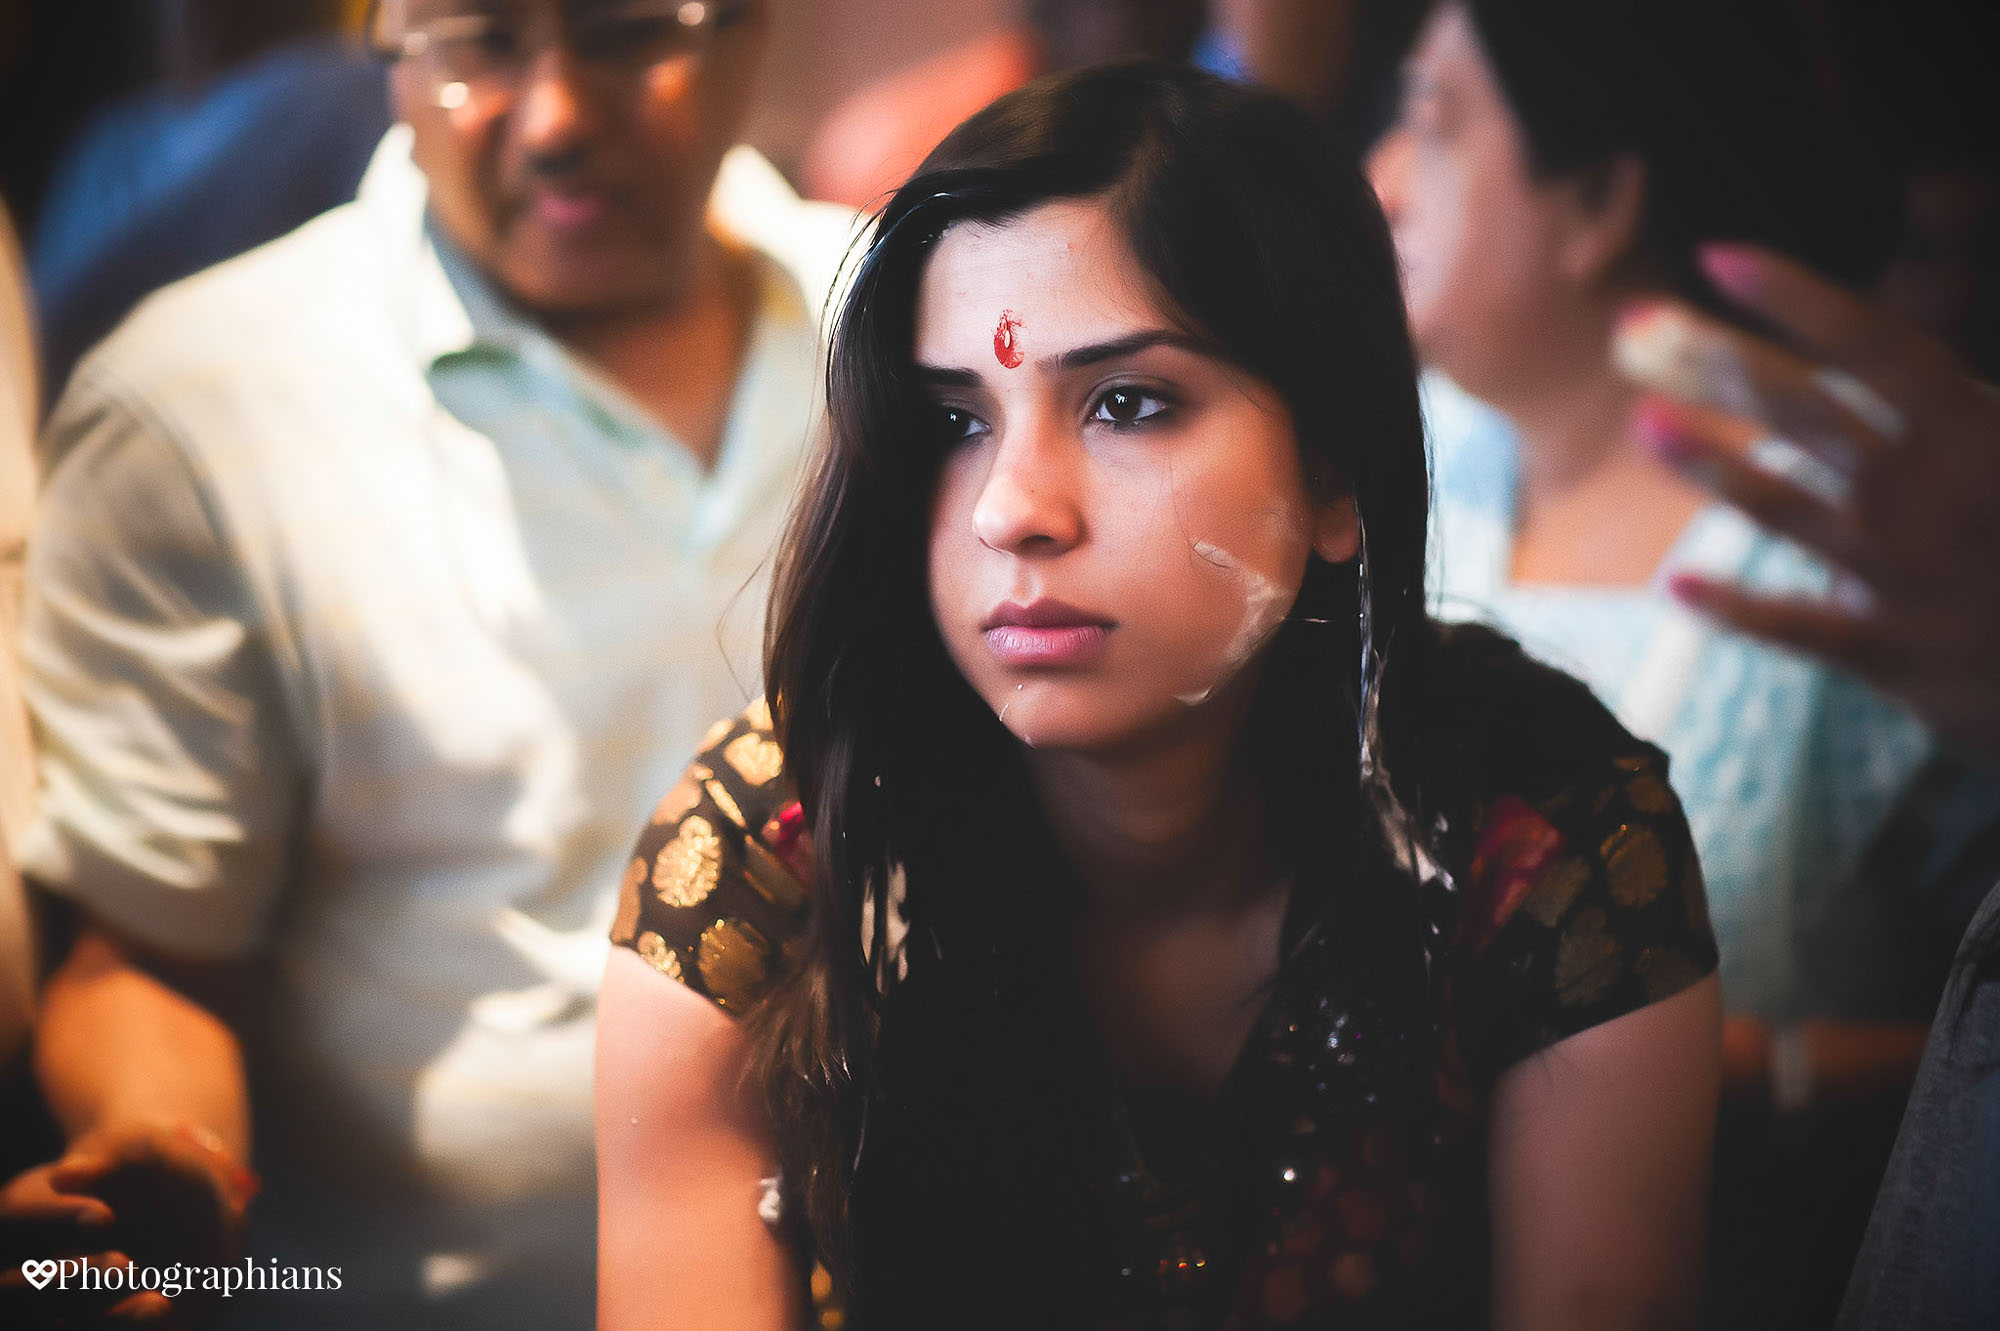 Punjabi_Marwari_Wedding_Kolkata_Photographians_-VIDHI-93